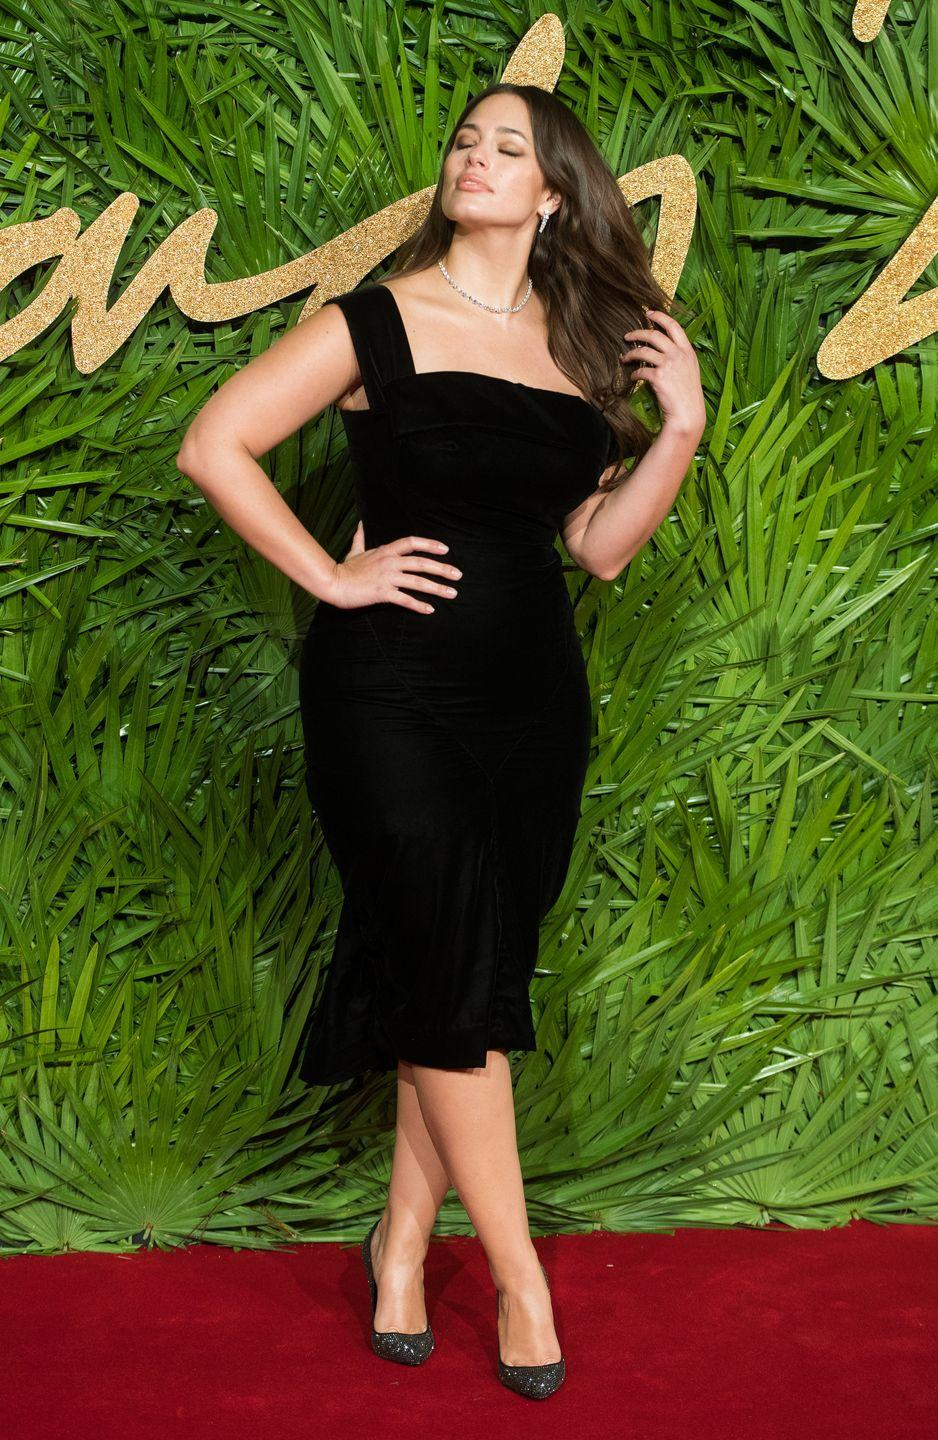 """<p>At the 2017 British Fashion Awards: While <a href=""""https://www.cosmopolitan.com/uk/fashion/celebrity/g14059414/british-fashion-awards-2017-red-carpet/"""" rel=""""nofollow noopener"""" target=""""_blank"""" data-ylk=""""slk:everyone else was rocking up to the red carpet in nearly-naked outfits"""" class=""""link rapid-noclick-resp"""">everyone else was rocking up to the red carpet in nearly-naked outfits</a>, Ashley Graham was keeping it classy in the most simple LBD dress paired with plenty of diamonds. Chic AF.</p>"""